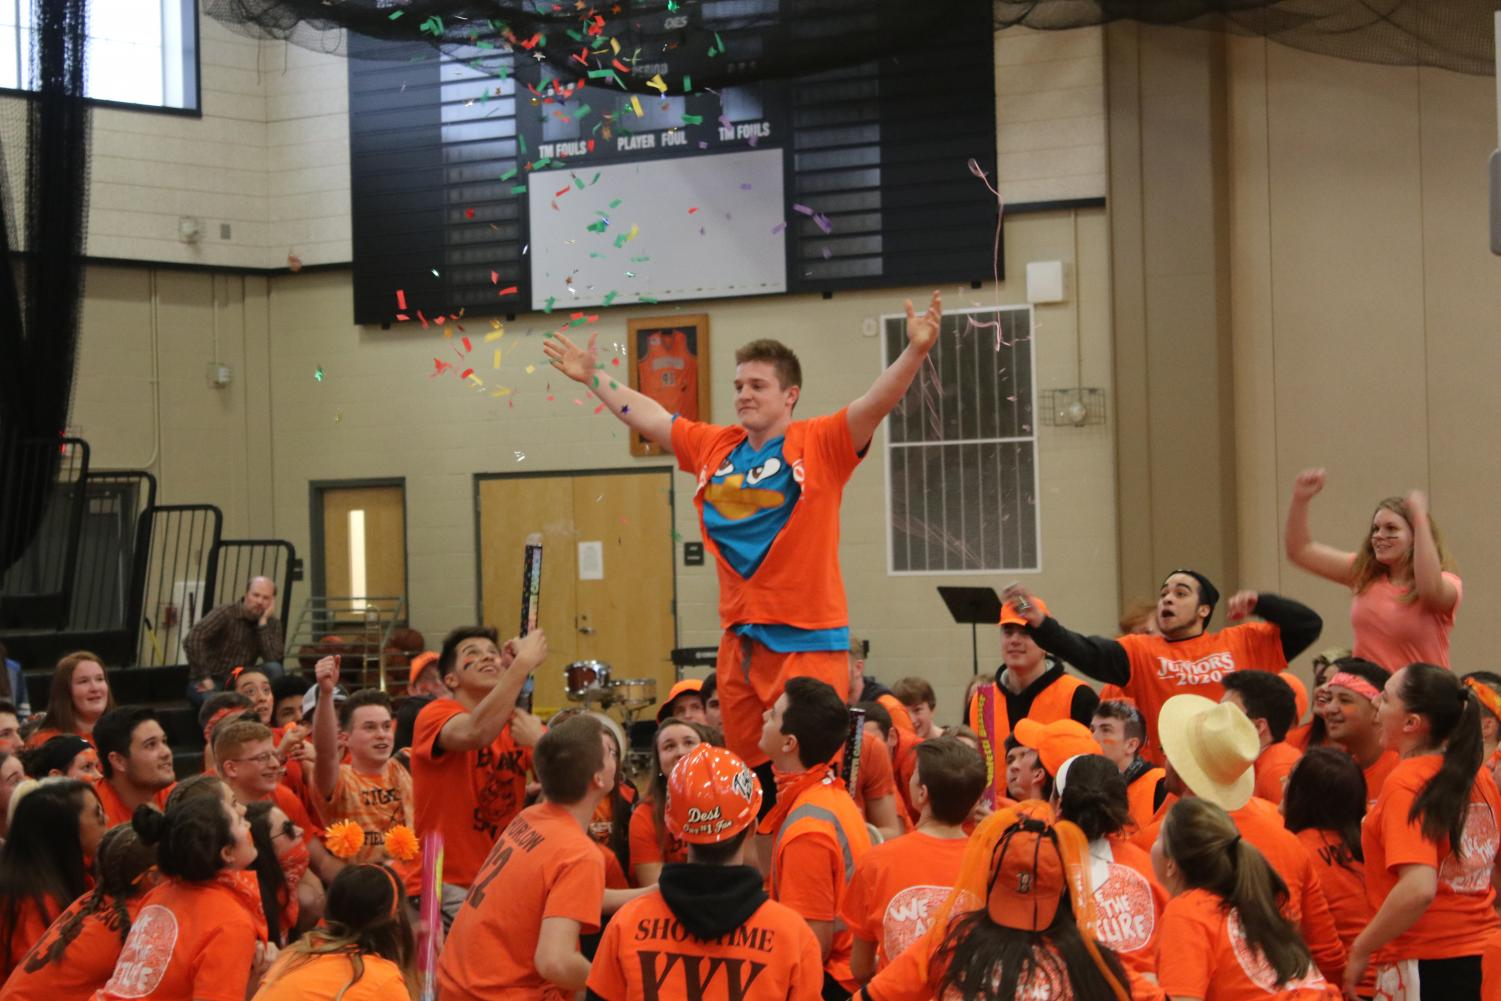 Junior Kurtis Edgerton provides a spirited ending to the junior class dance at the rally on Friday, March 22.